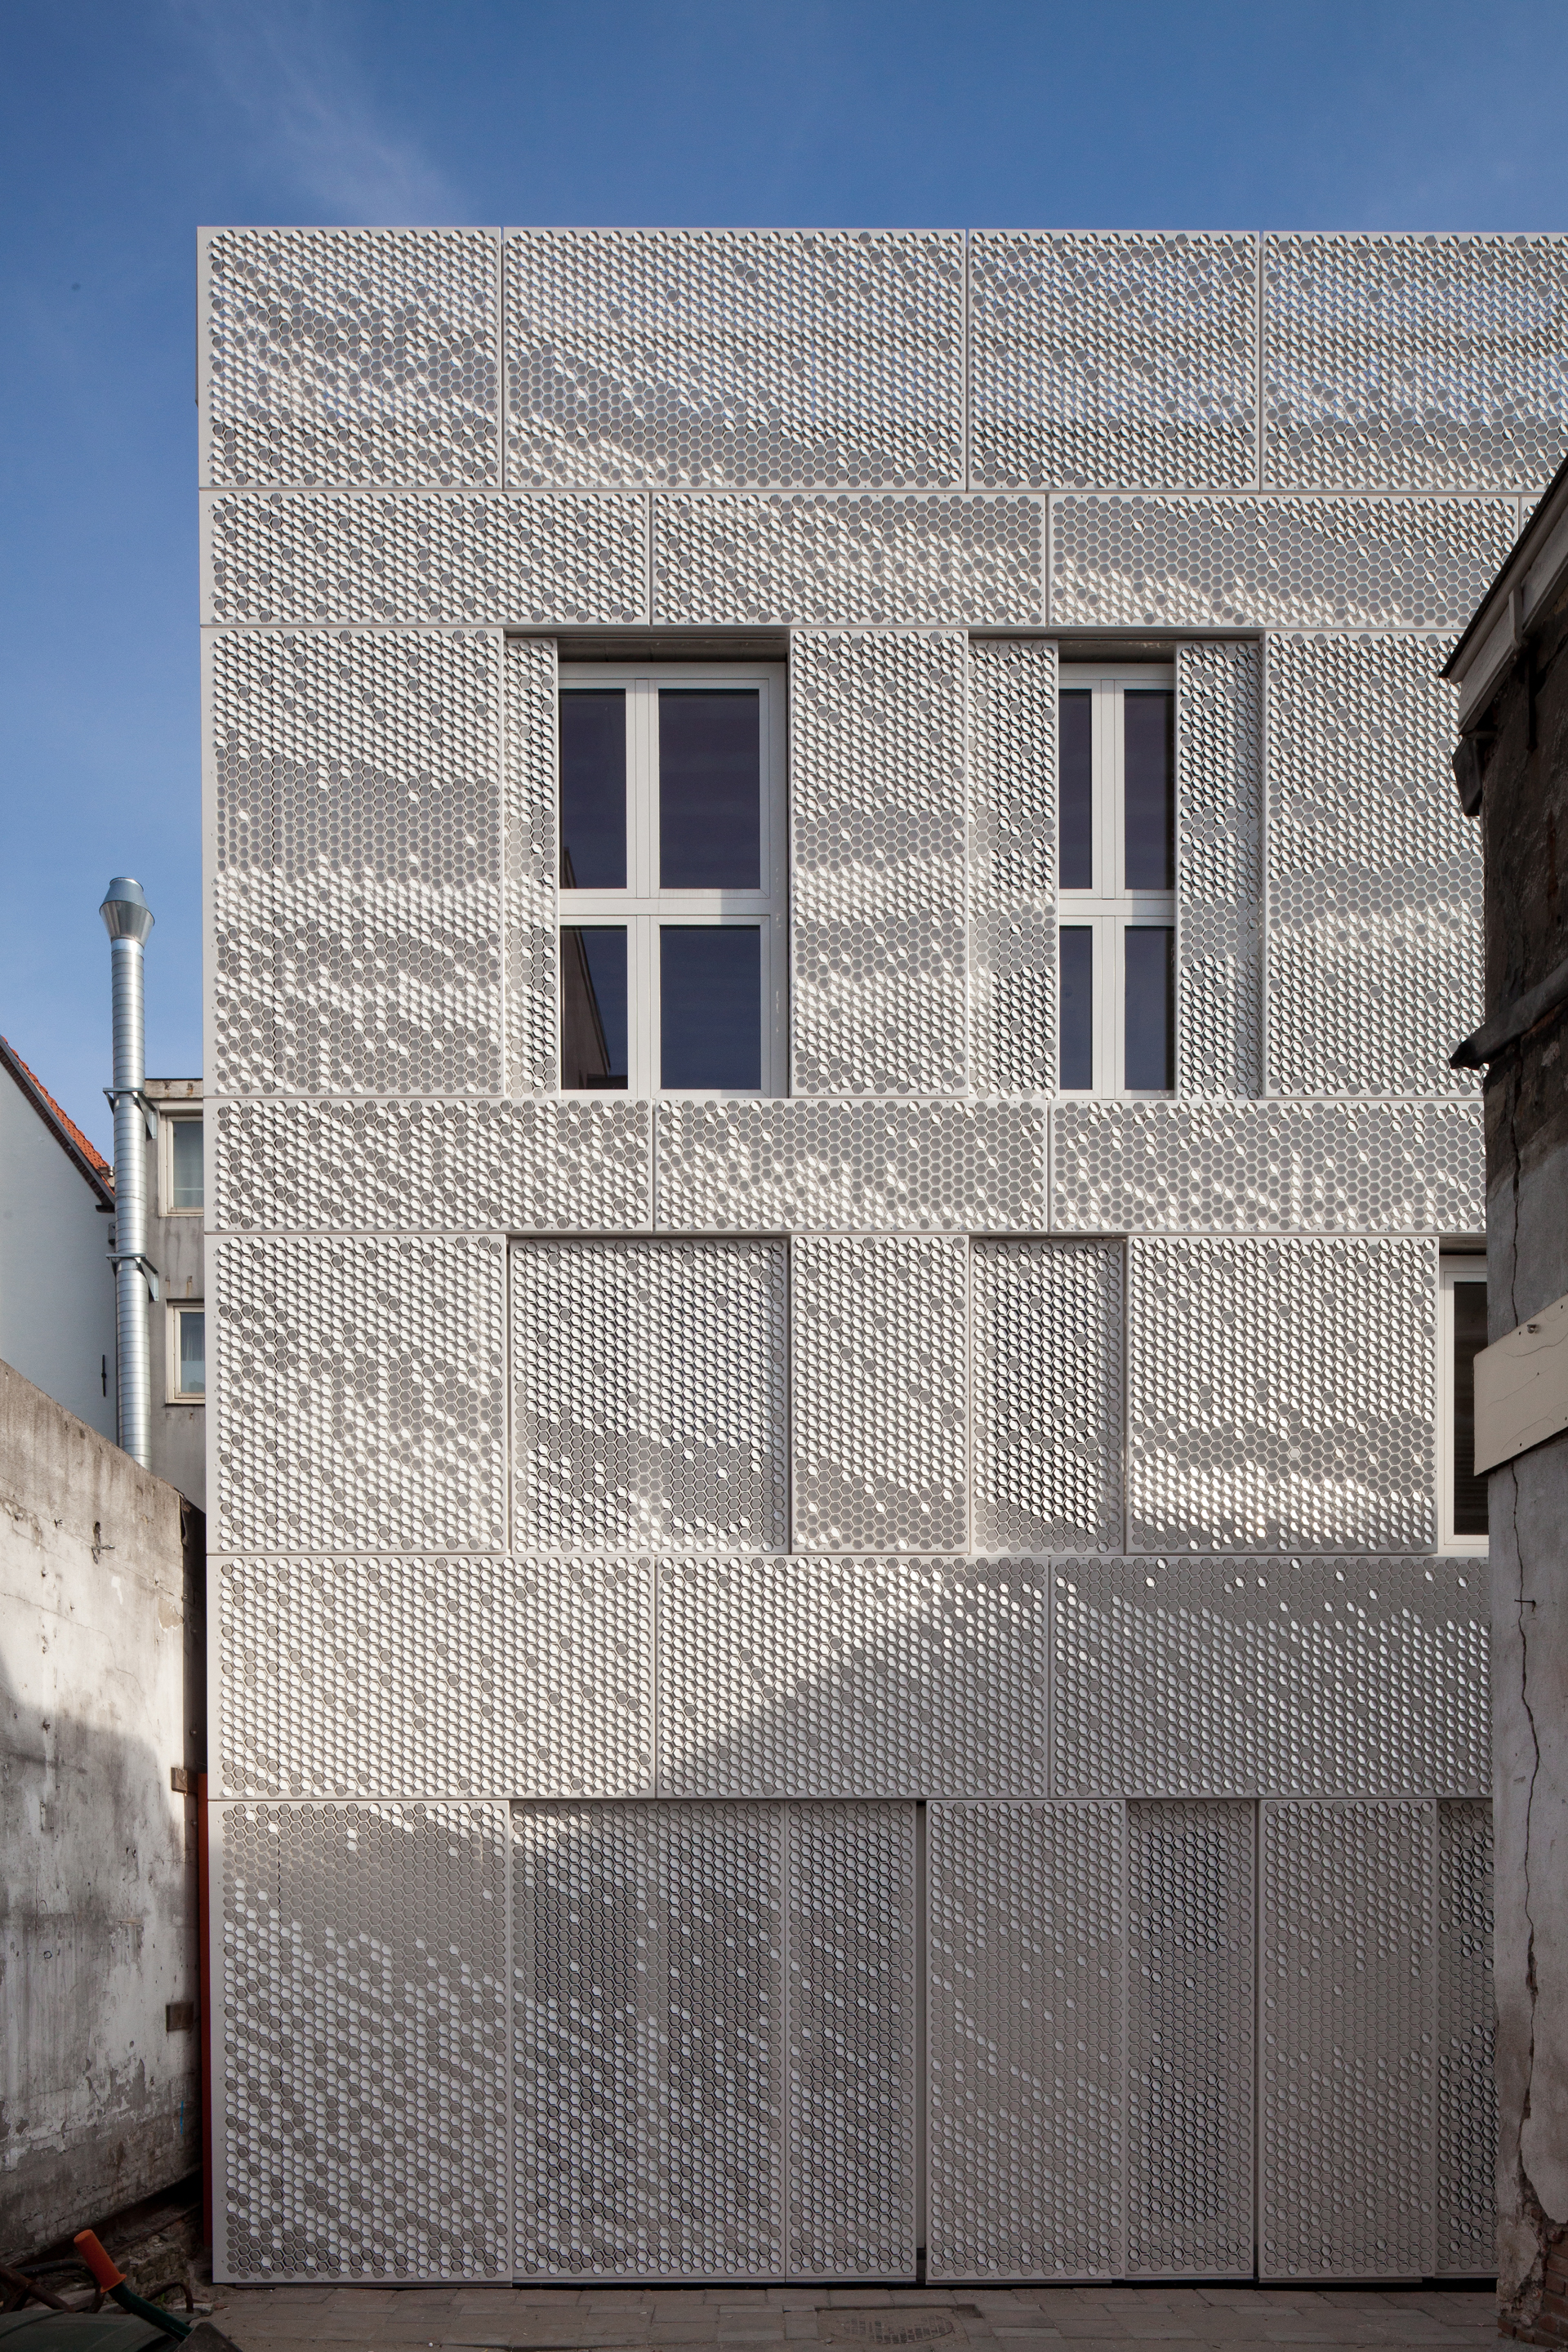 White perforated metal panels with a graphic pattern cover the faade and also double